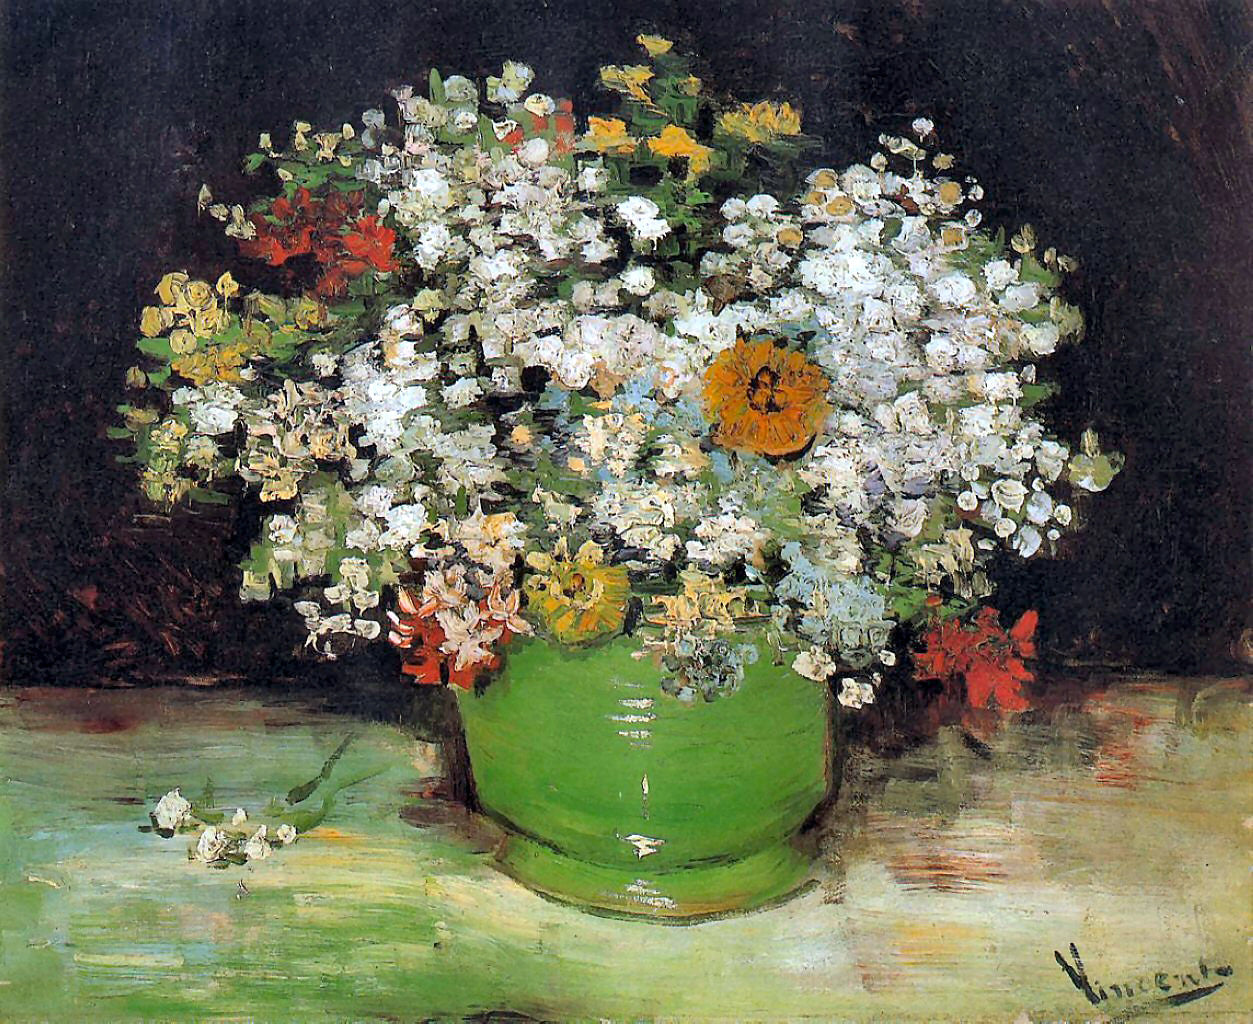 Vase with Zinnias and other Flowers by Vincent Van Gogh & Vase with Zinnias and other Flowers by Vincent Van Gogh - Bosak Art